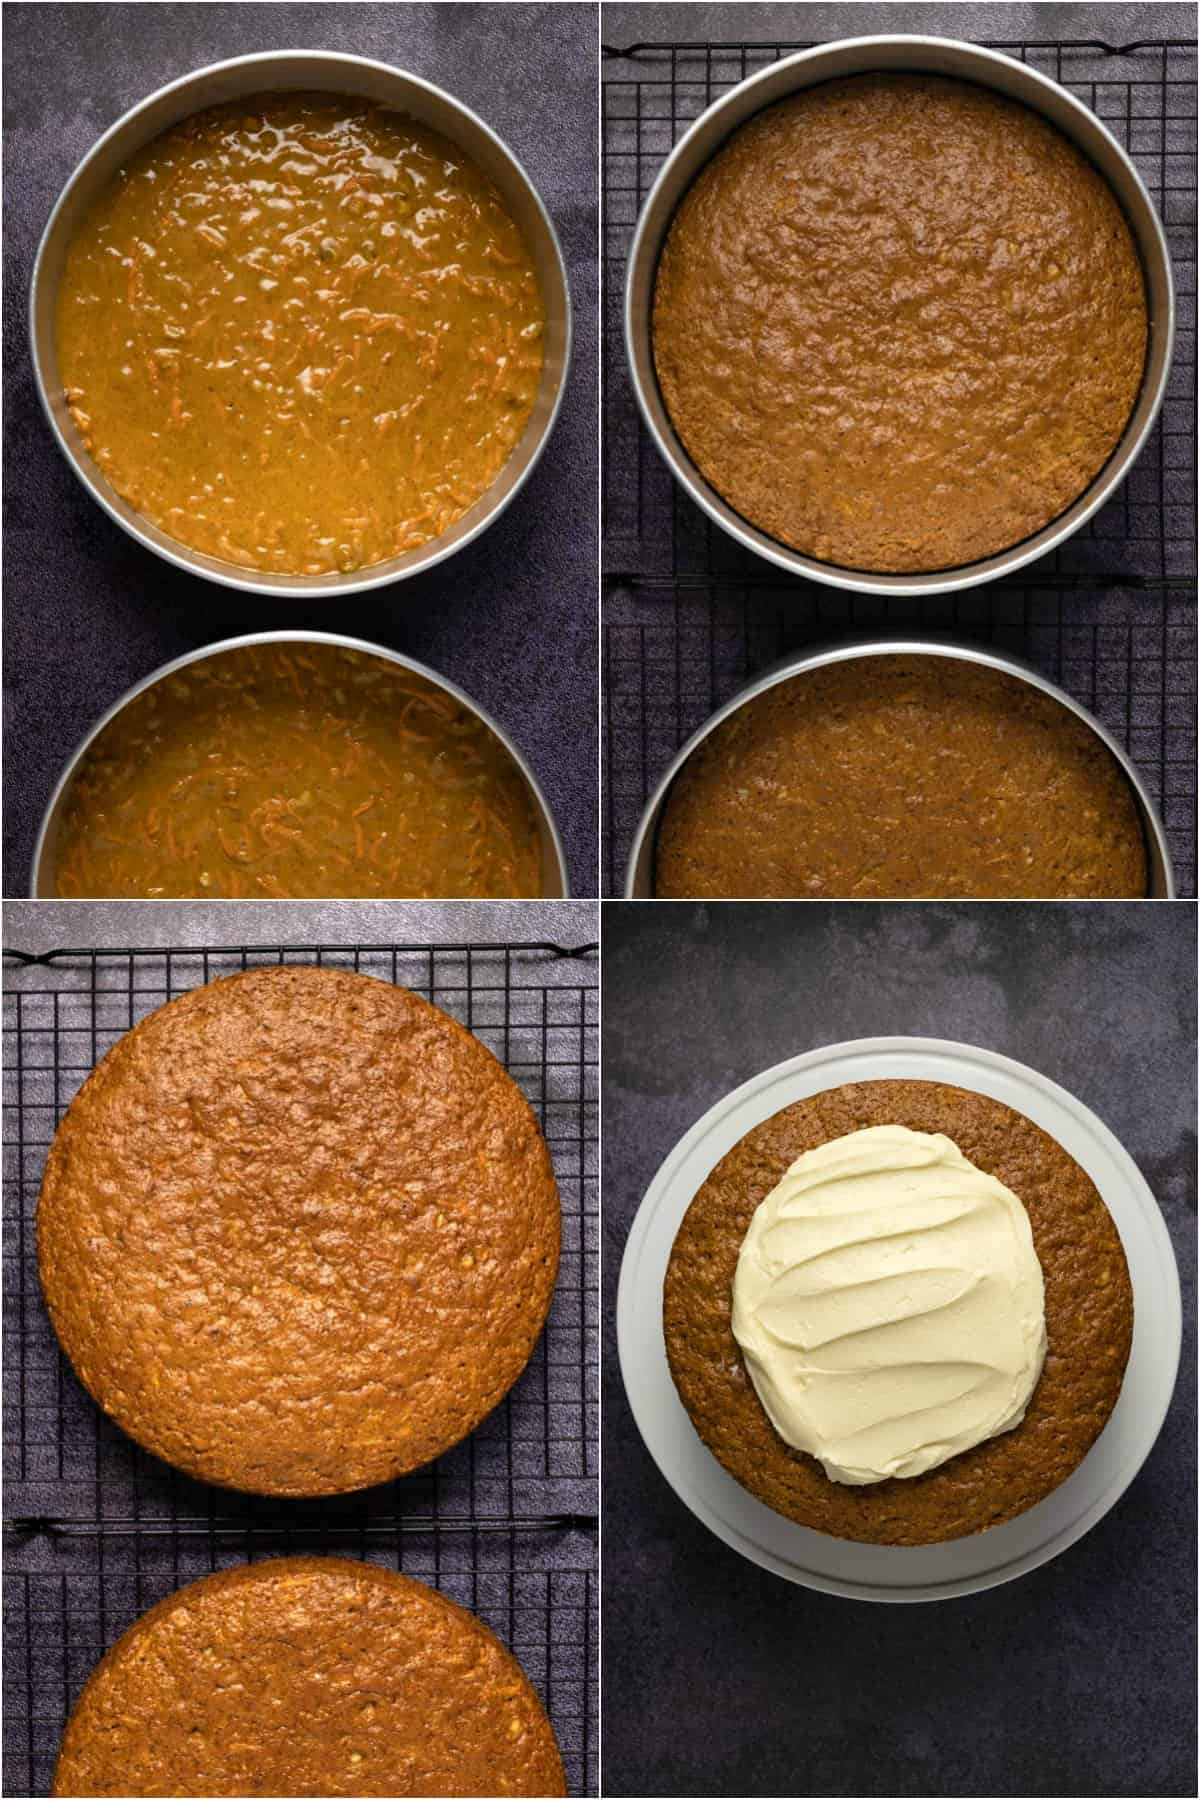 Step by step process photo collage of making carrot cake.